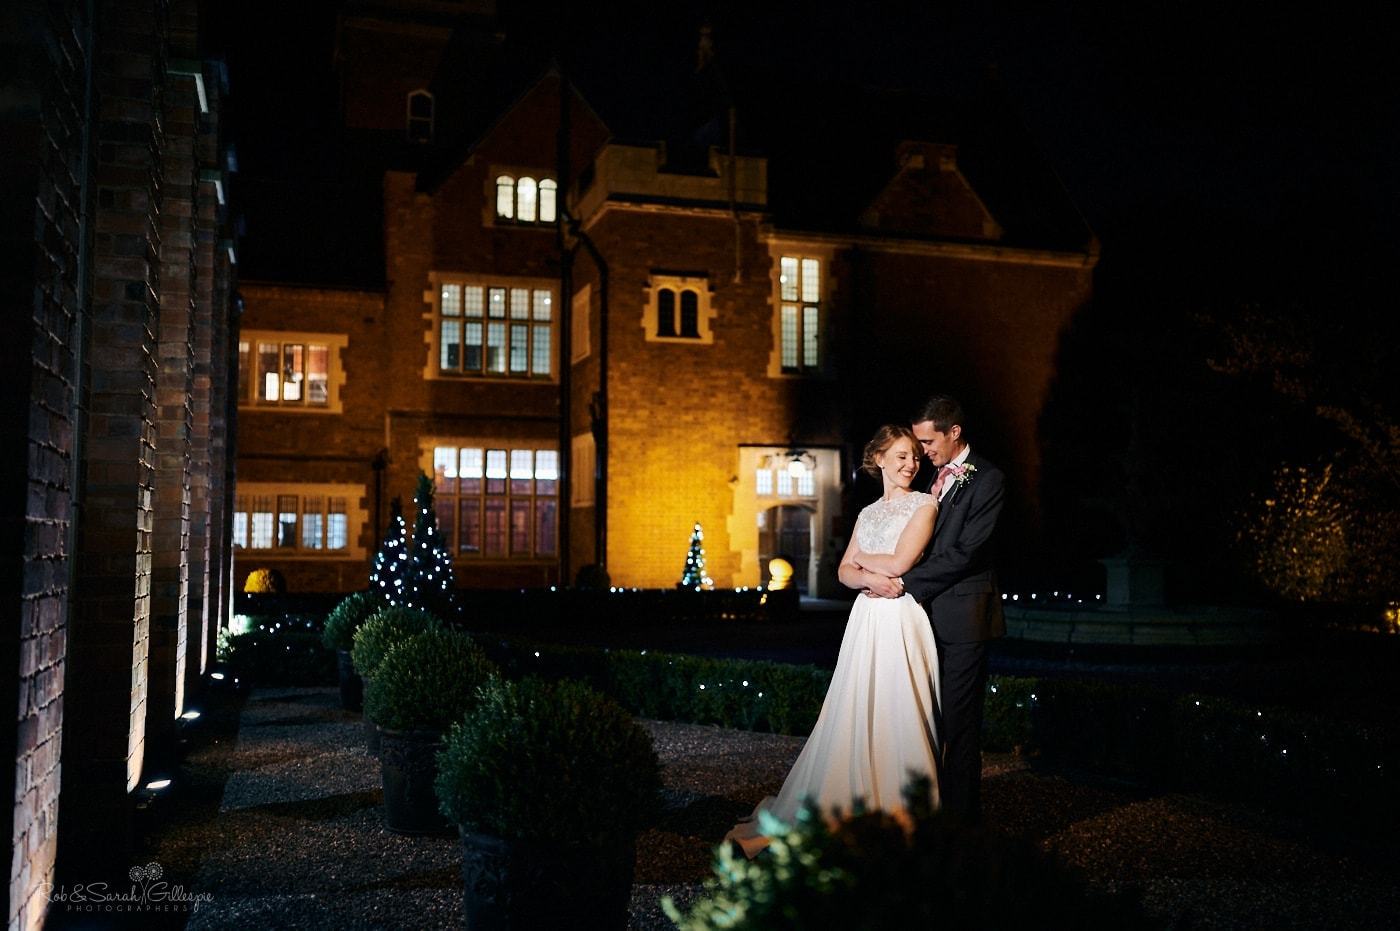 Bride and groom outside Pendrell Hall at night with lights